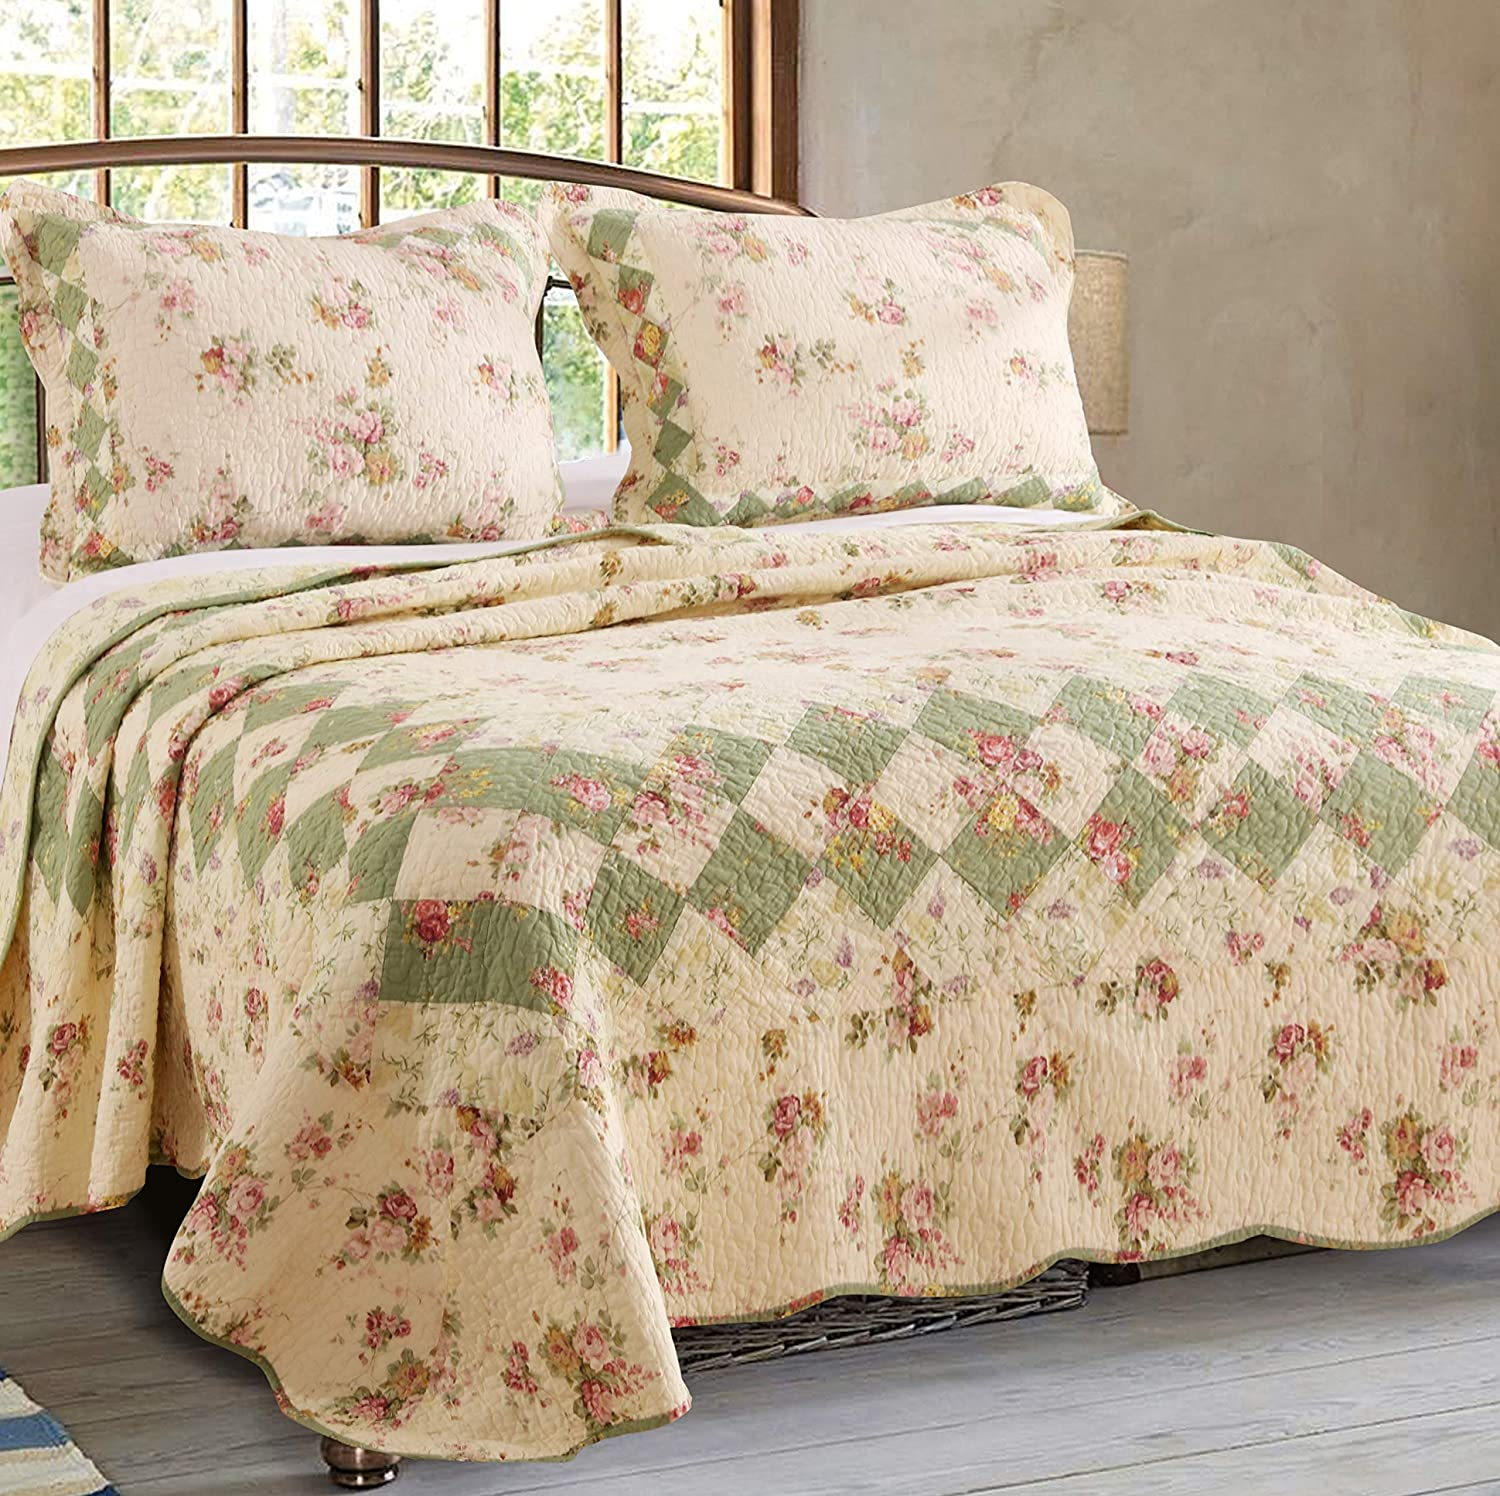 Greenland Home Bliss Twin Quilt Set GL-0307AMST